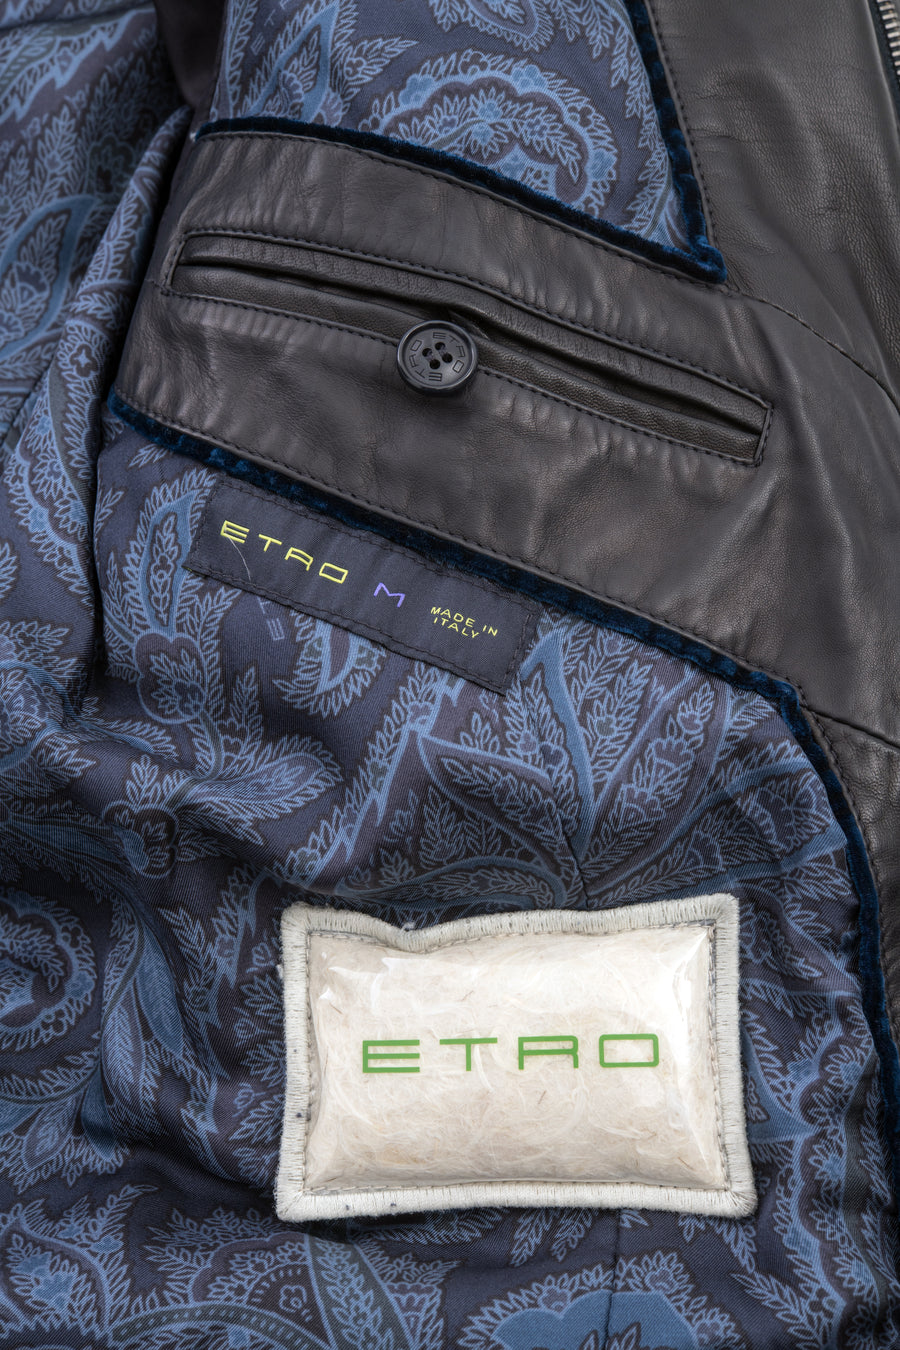 Etro Down Filled Leather Puffer Jacket Coat